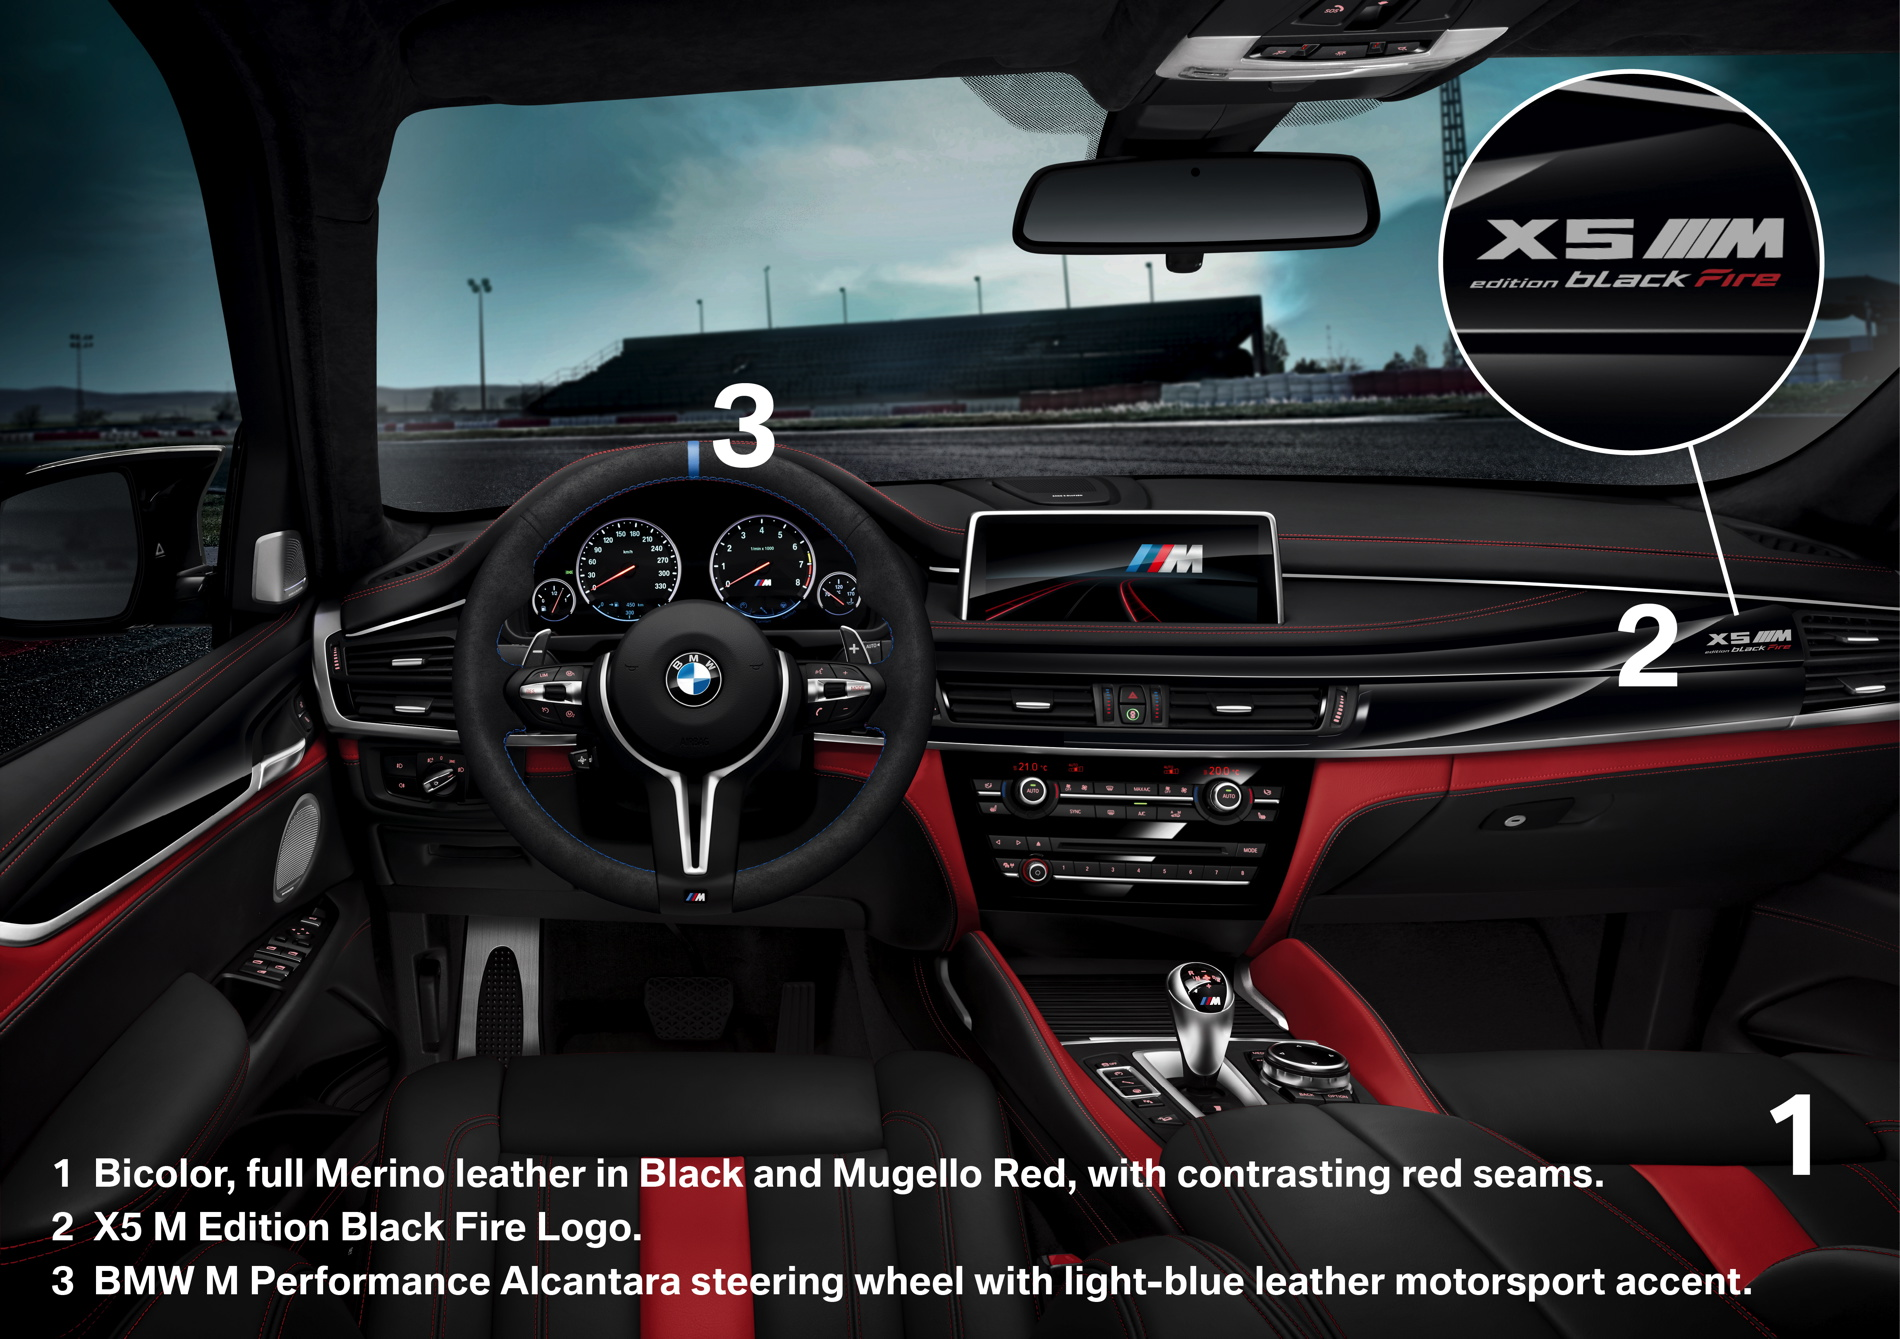 BMW X6M Black Fire Edition 01 830x585